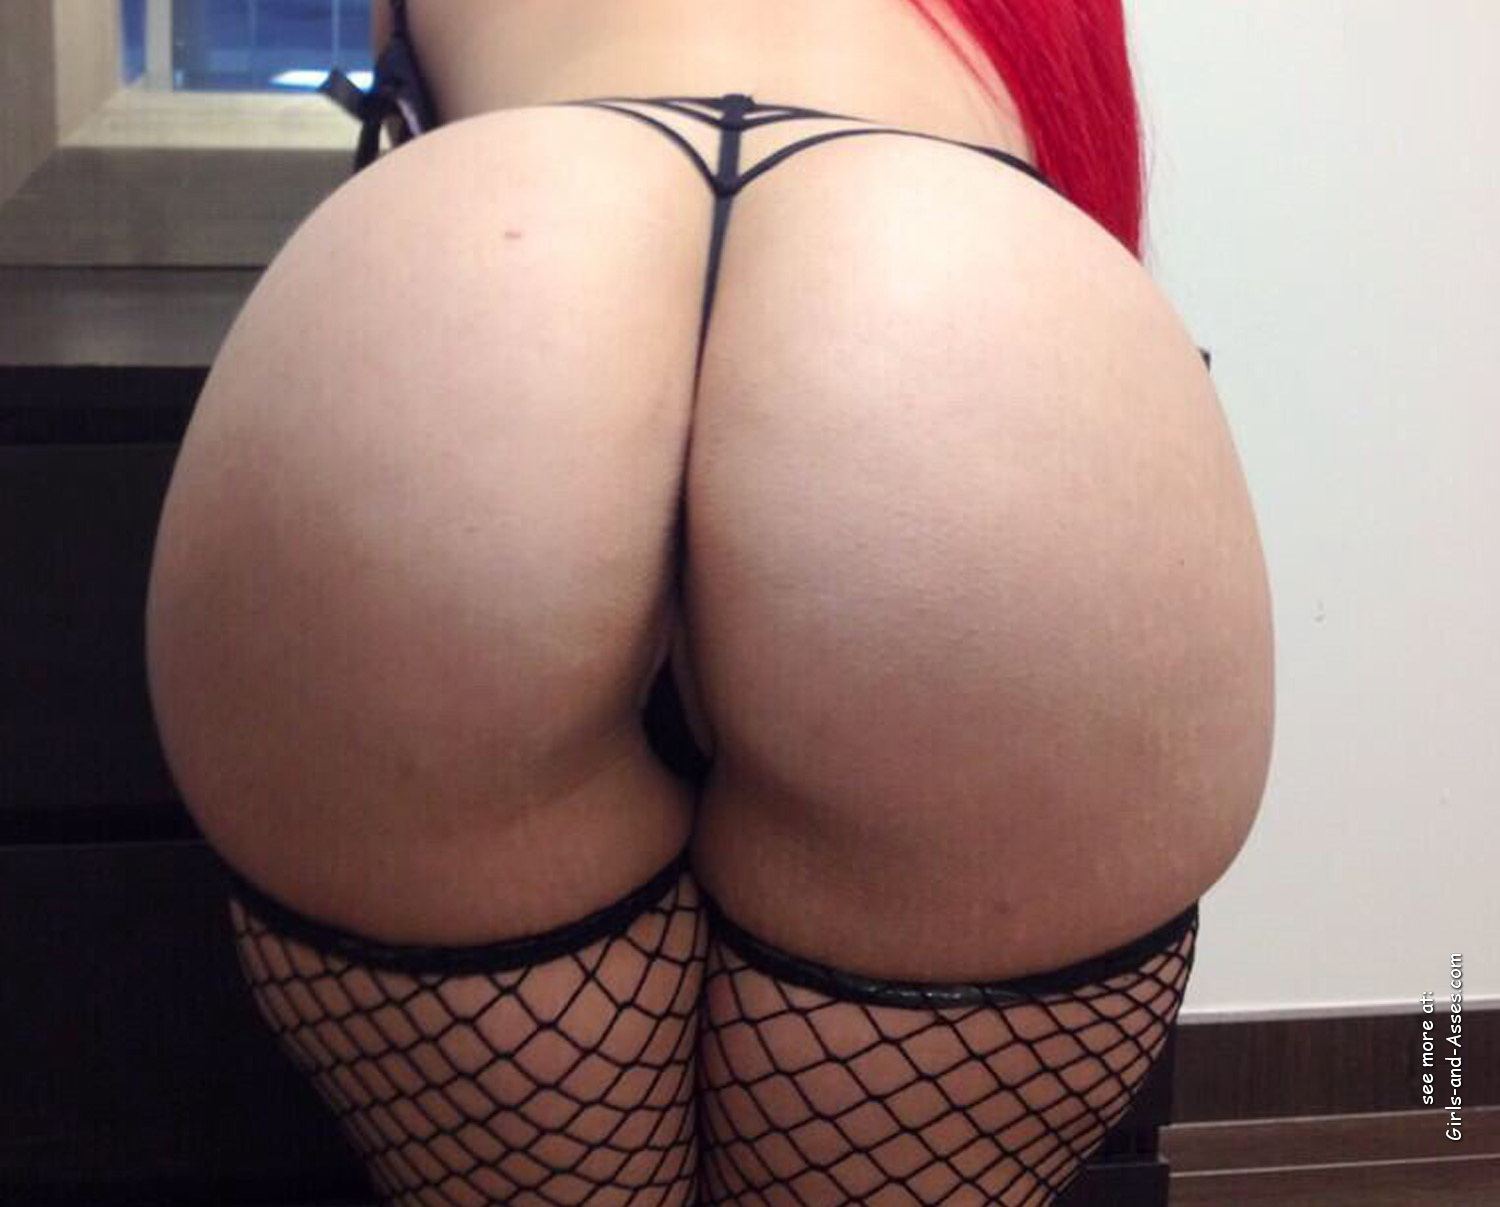 big white butt in fishnet stockings picture 00520